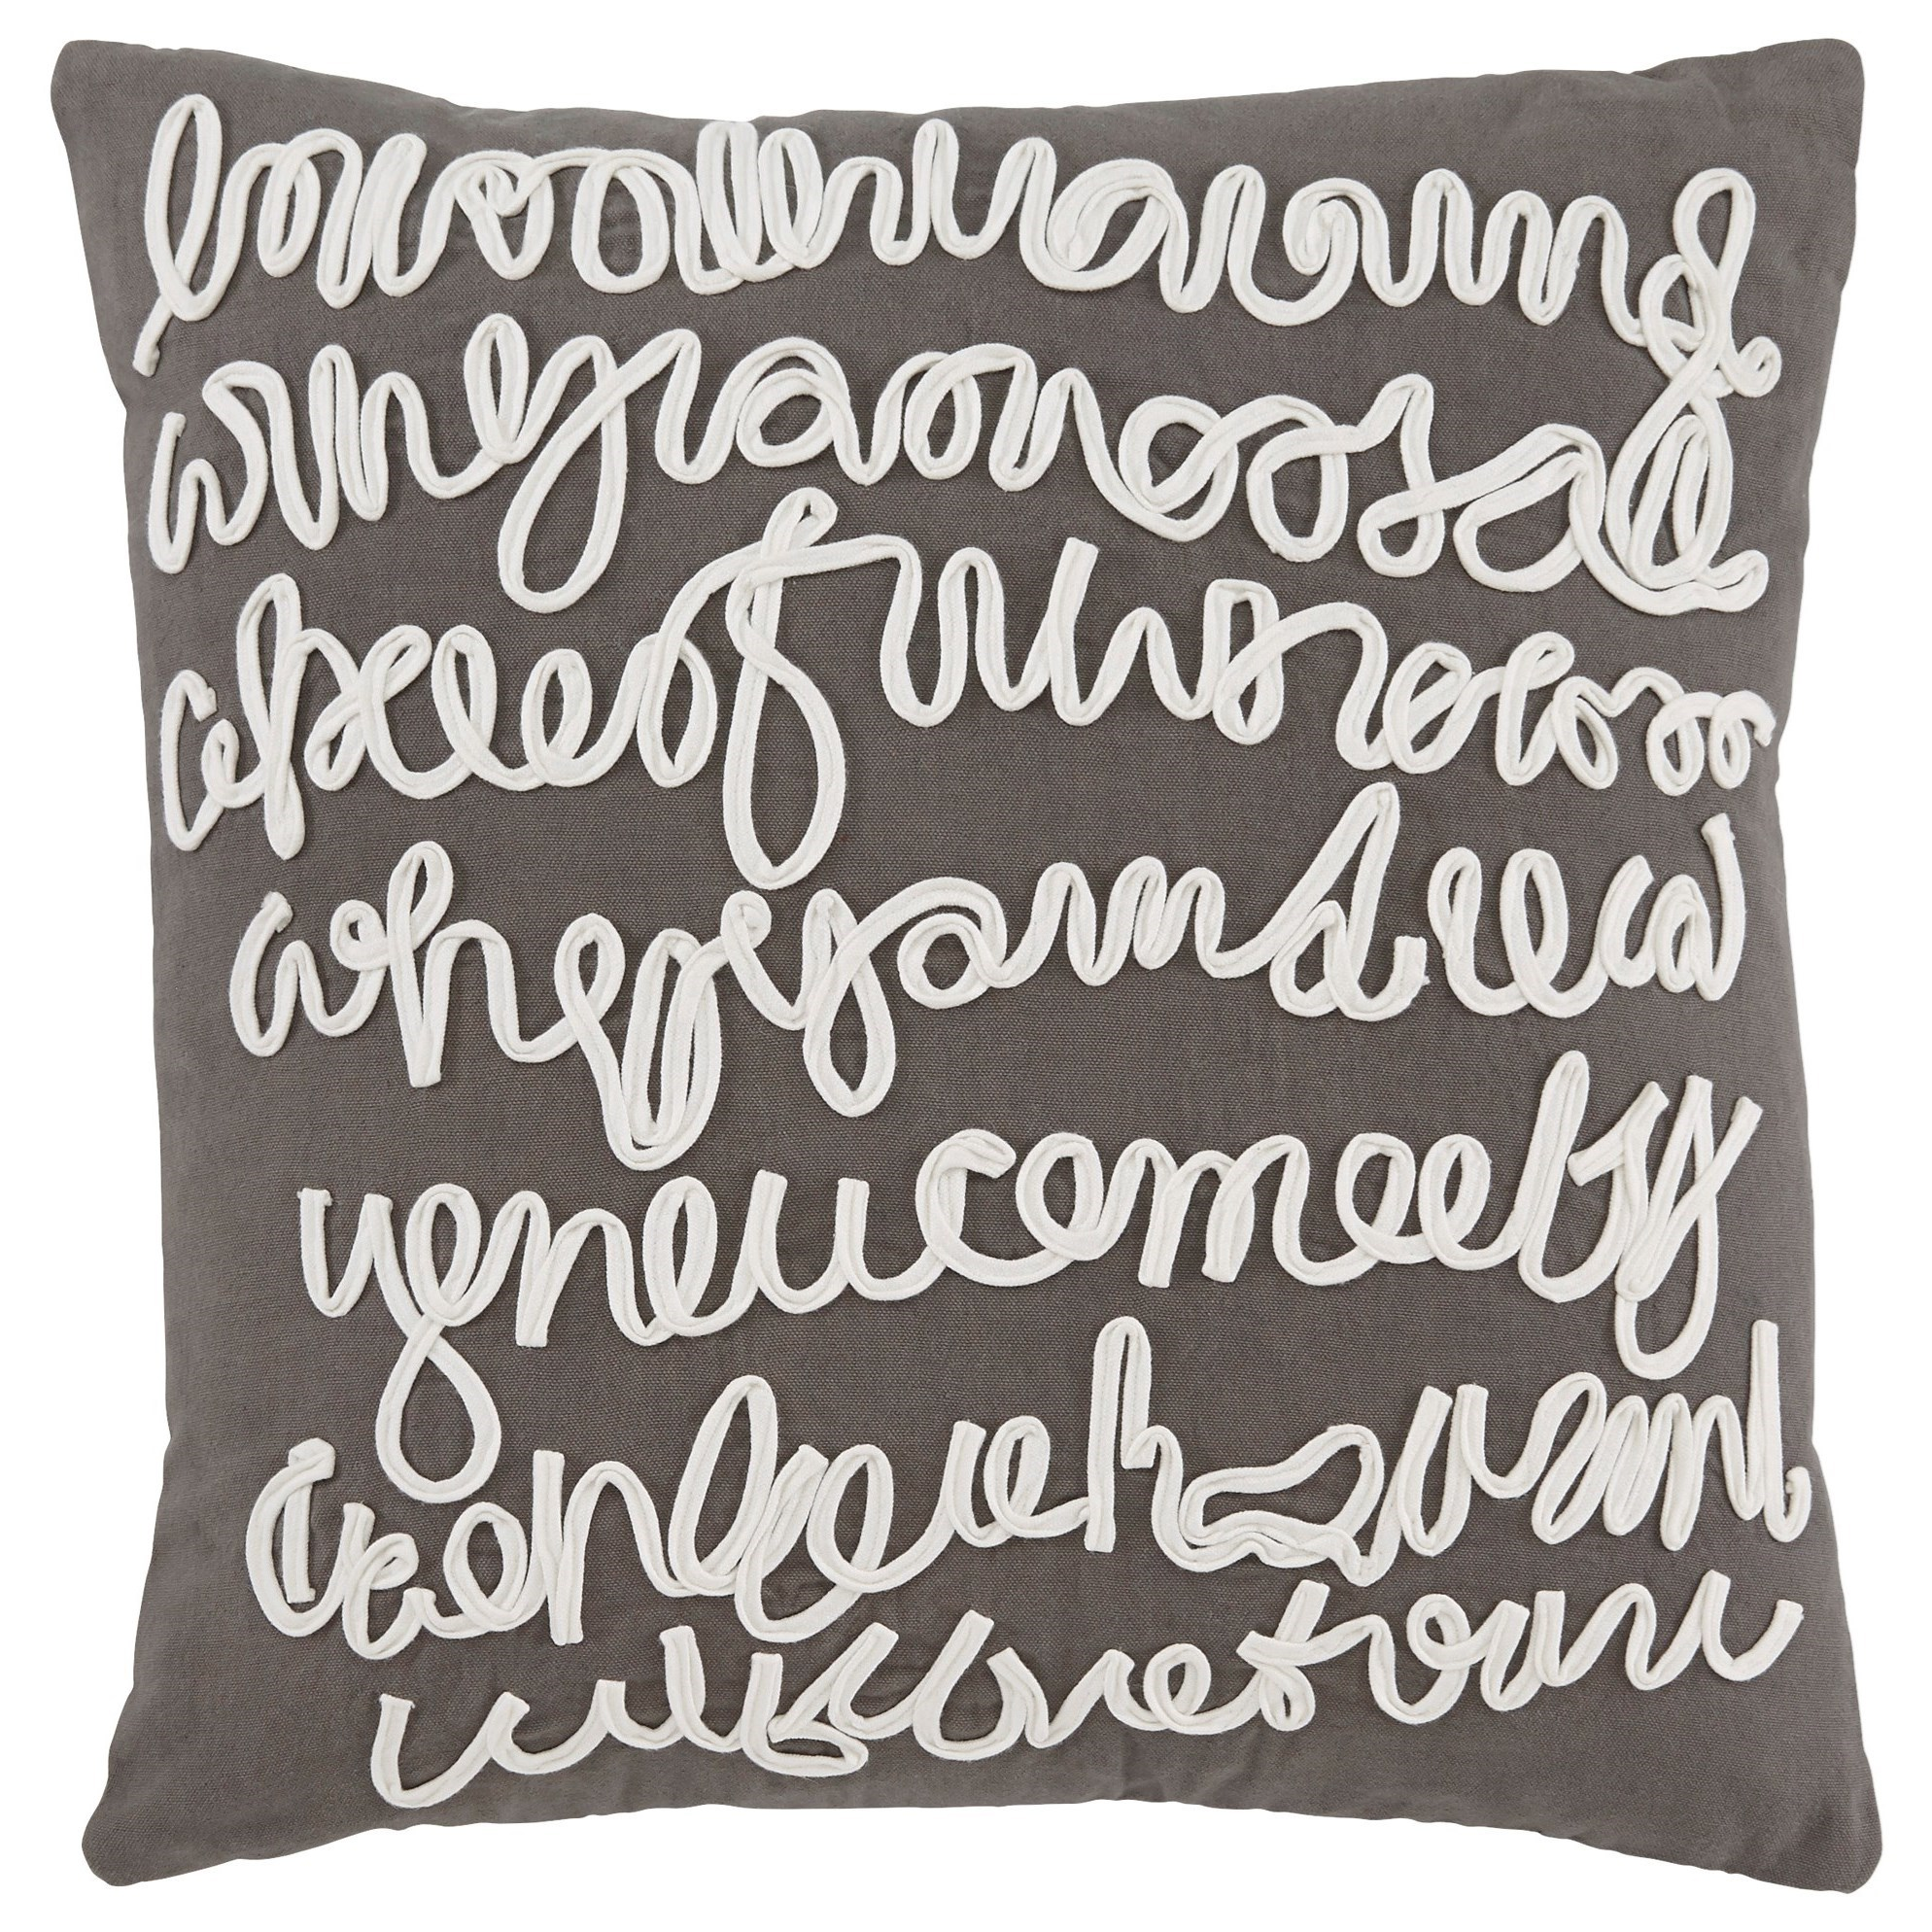 Signature Design by Ashley Pillows Alfie - Gray Pillow Cover - Item Number: A1000534P